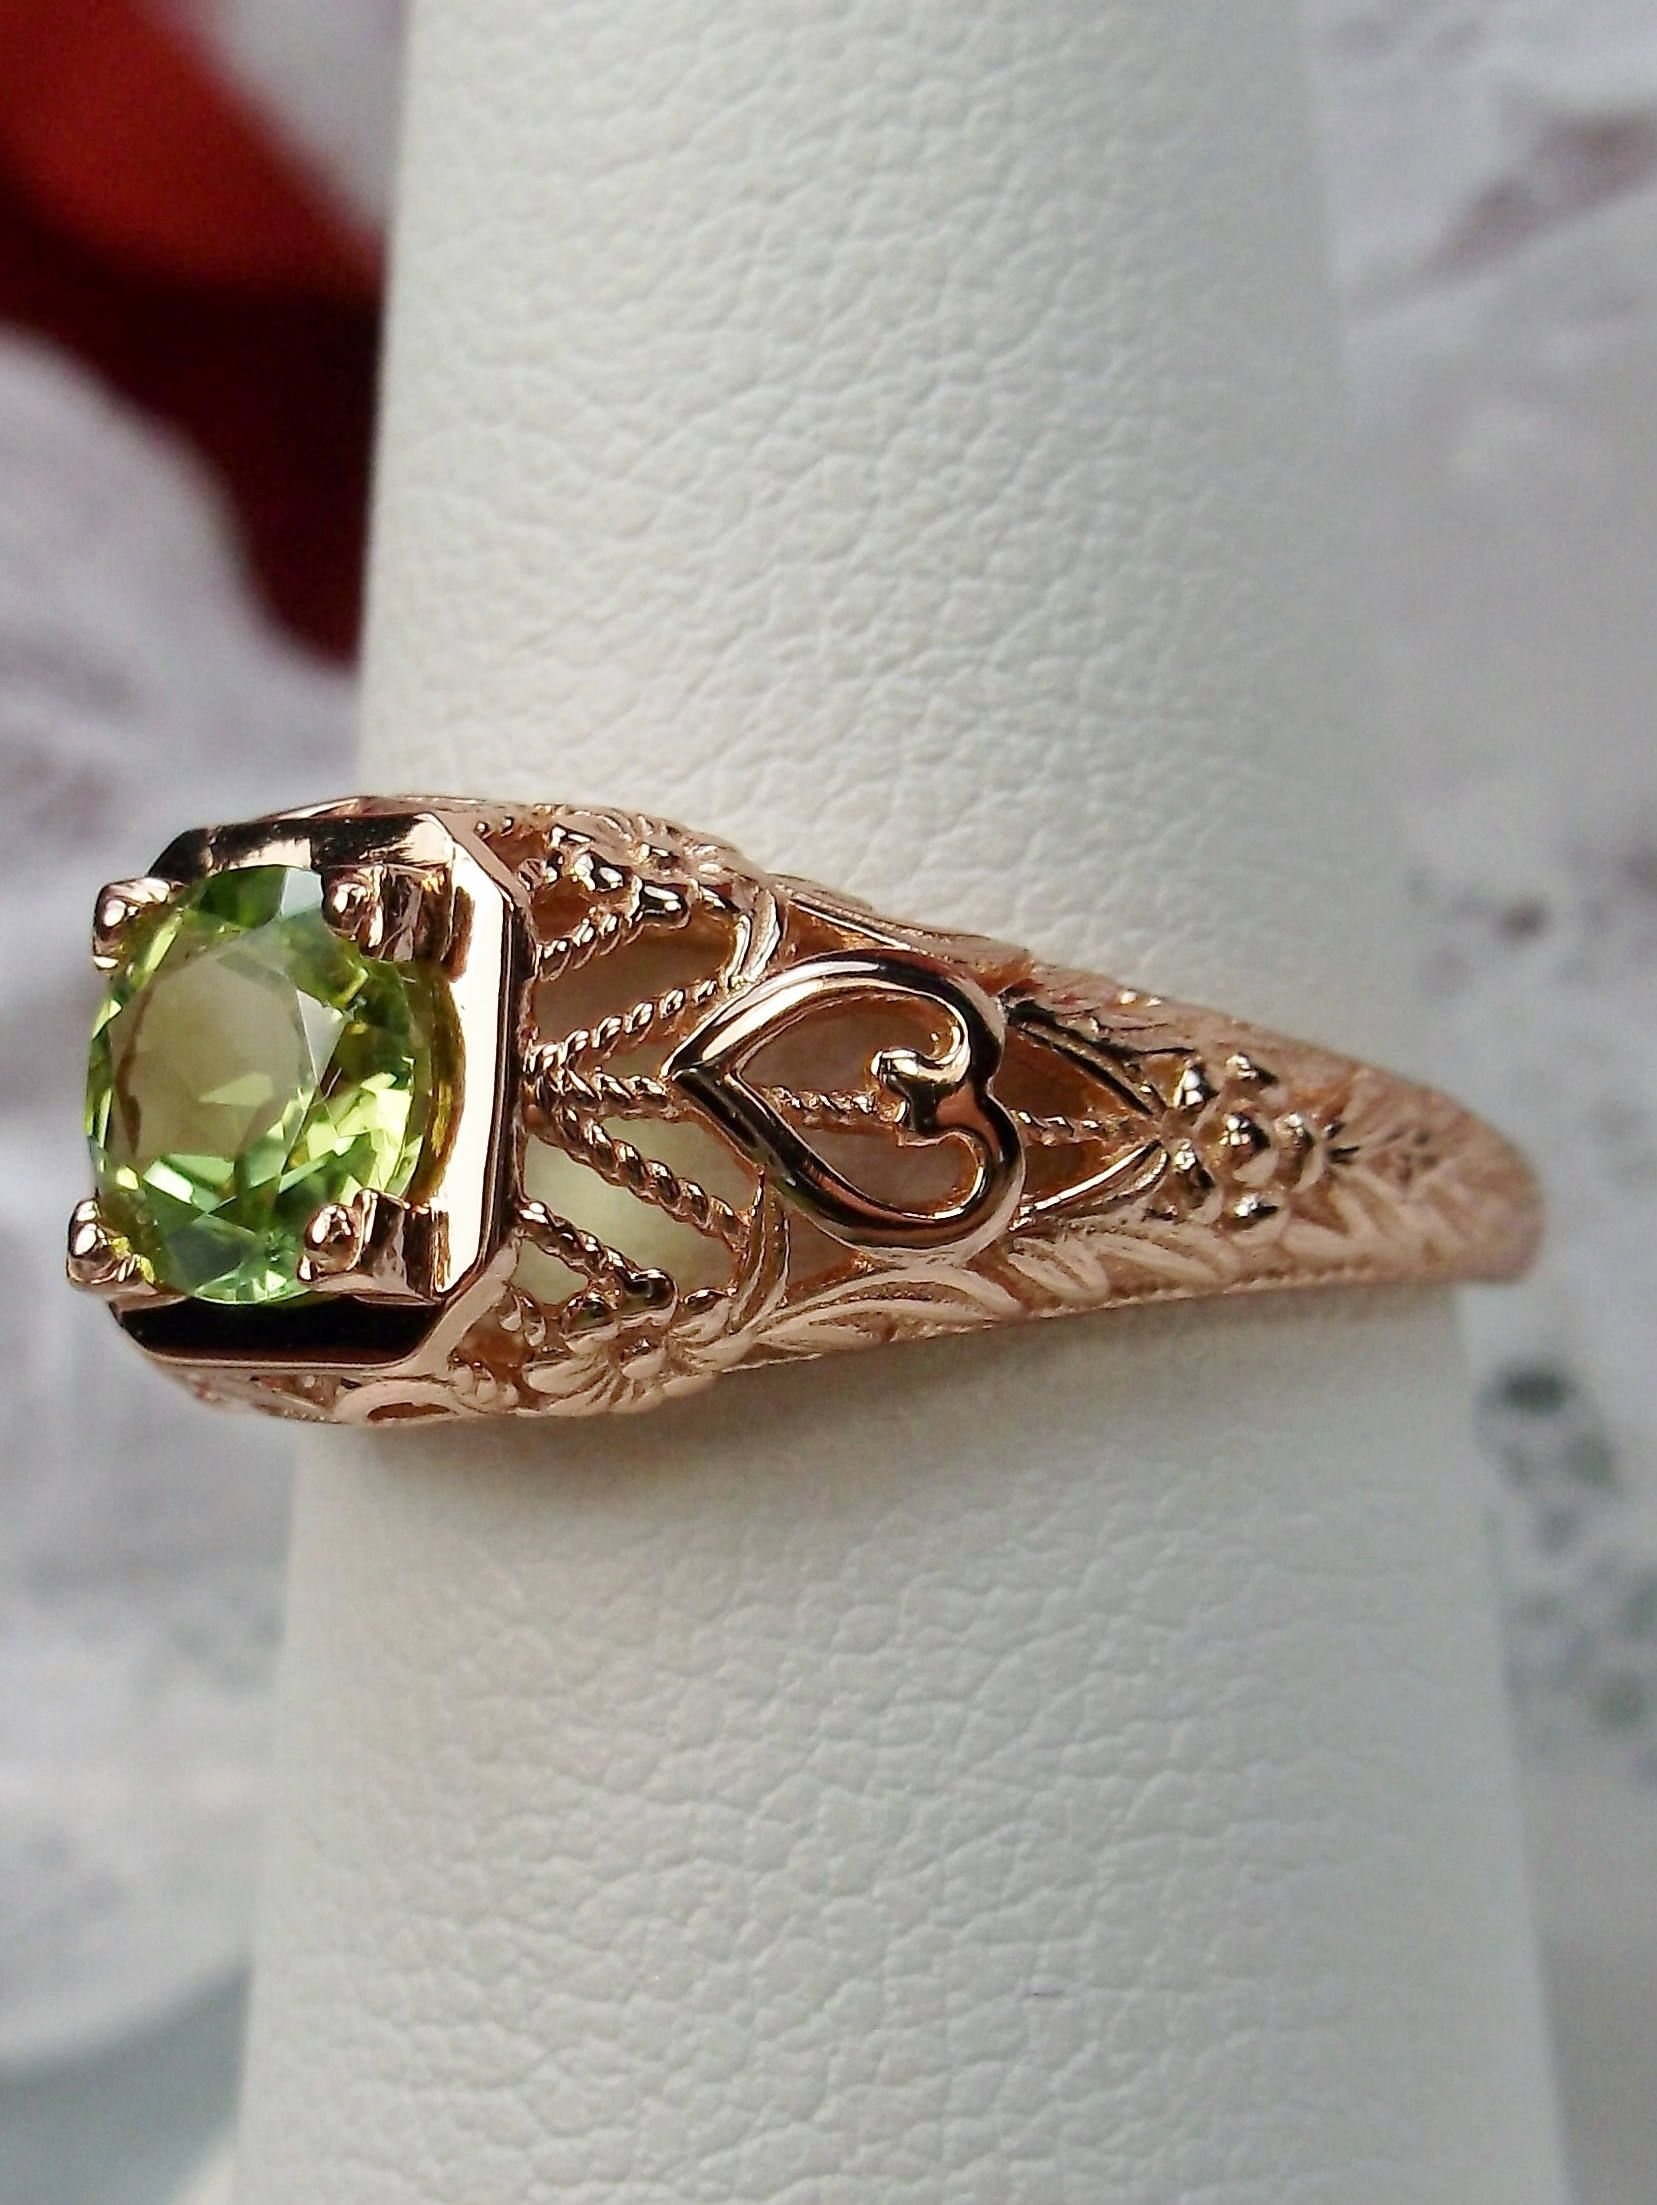 Natural 47ct Green Peridot 10k Solid Rose Gold Filigree Love Floral Ring Design 211 Made To Order With Images Antique Filigree Jewelry Green Peridot Sterling Silver Filigree